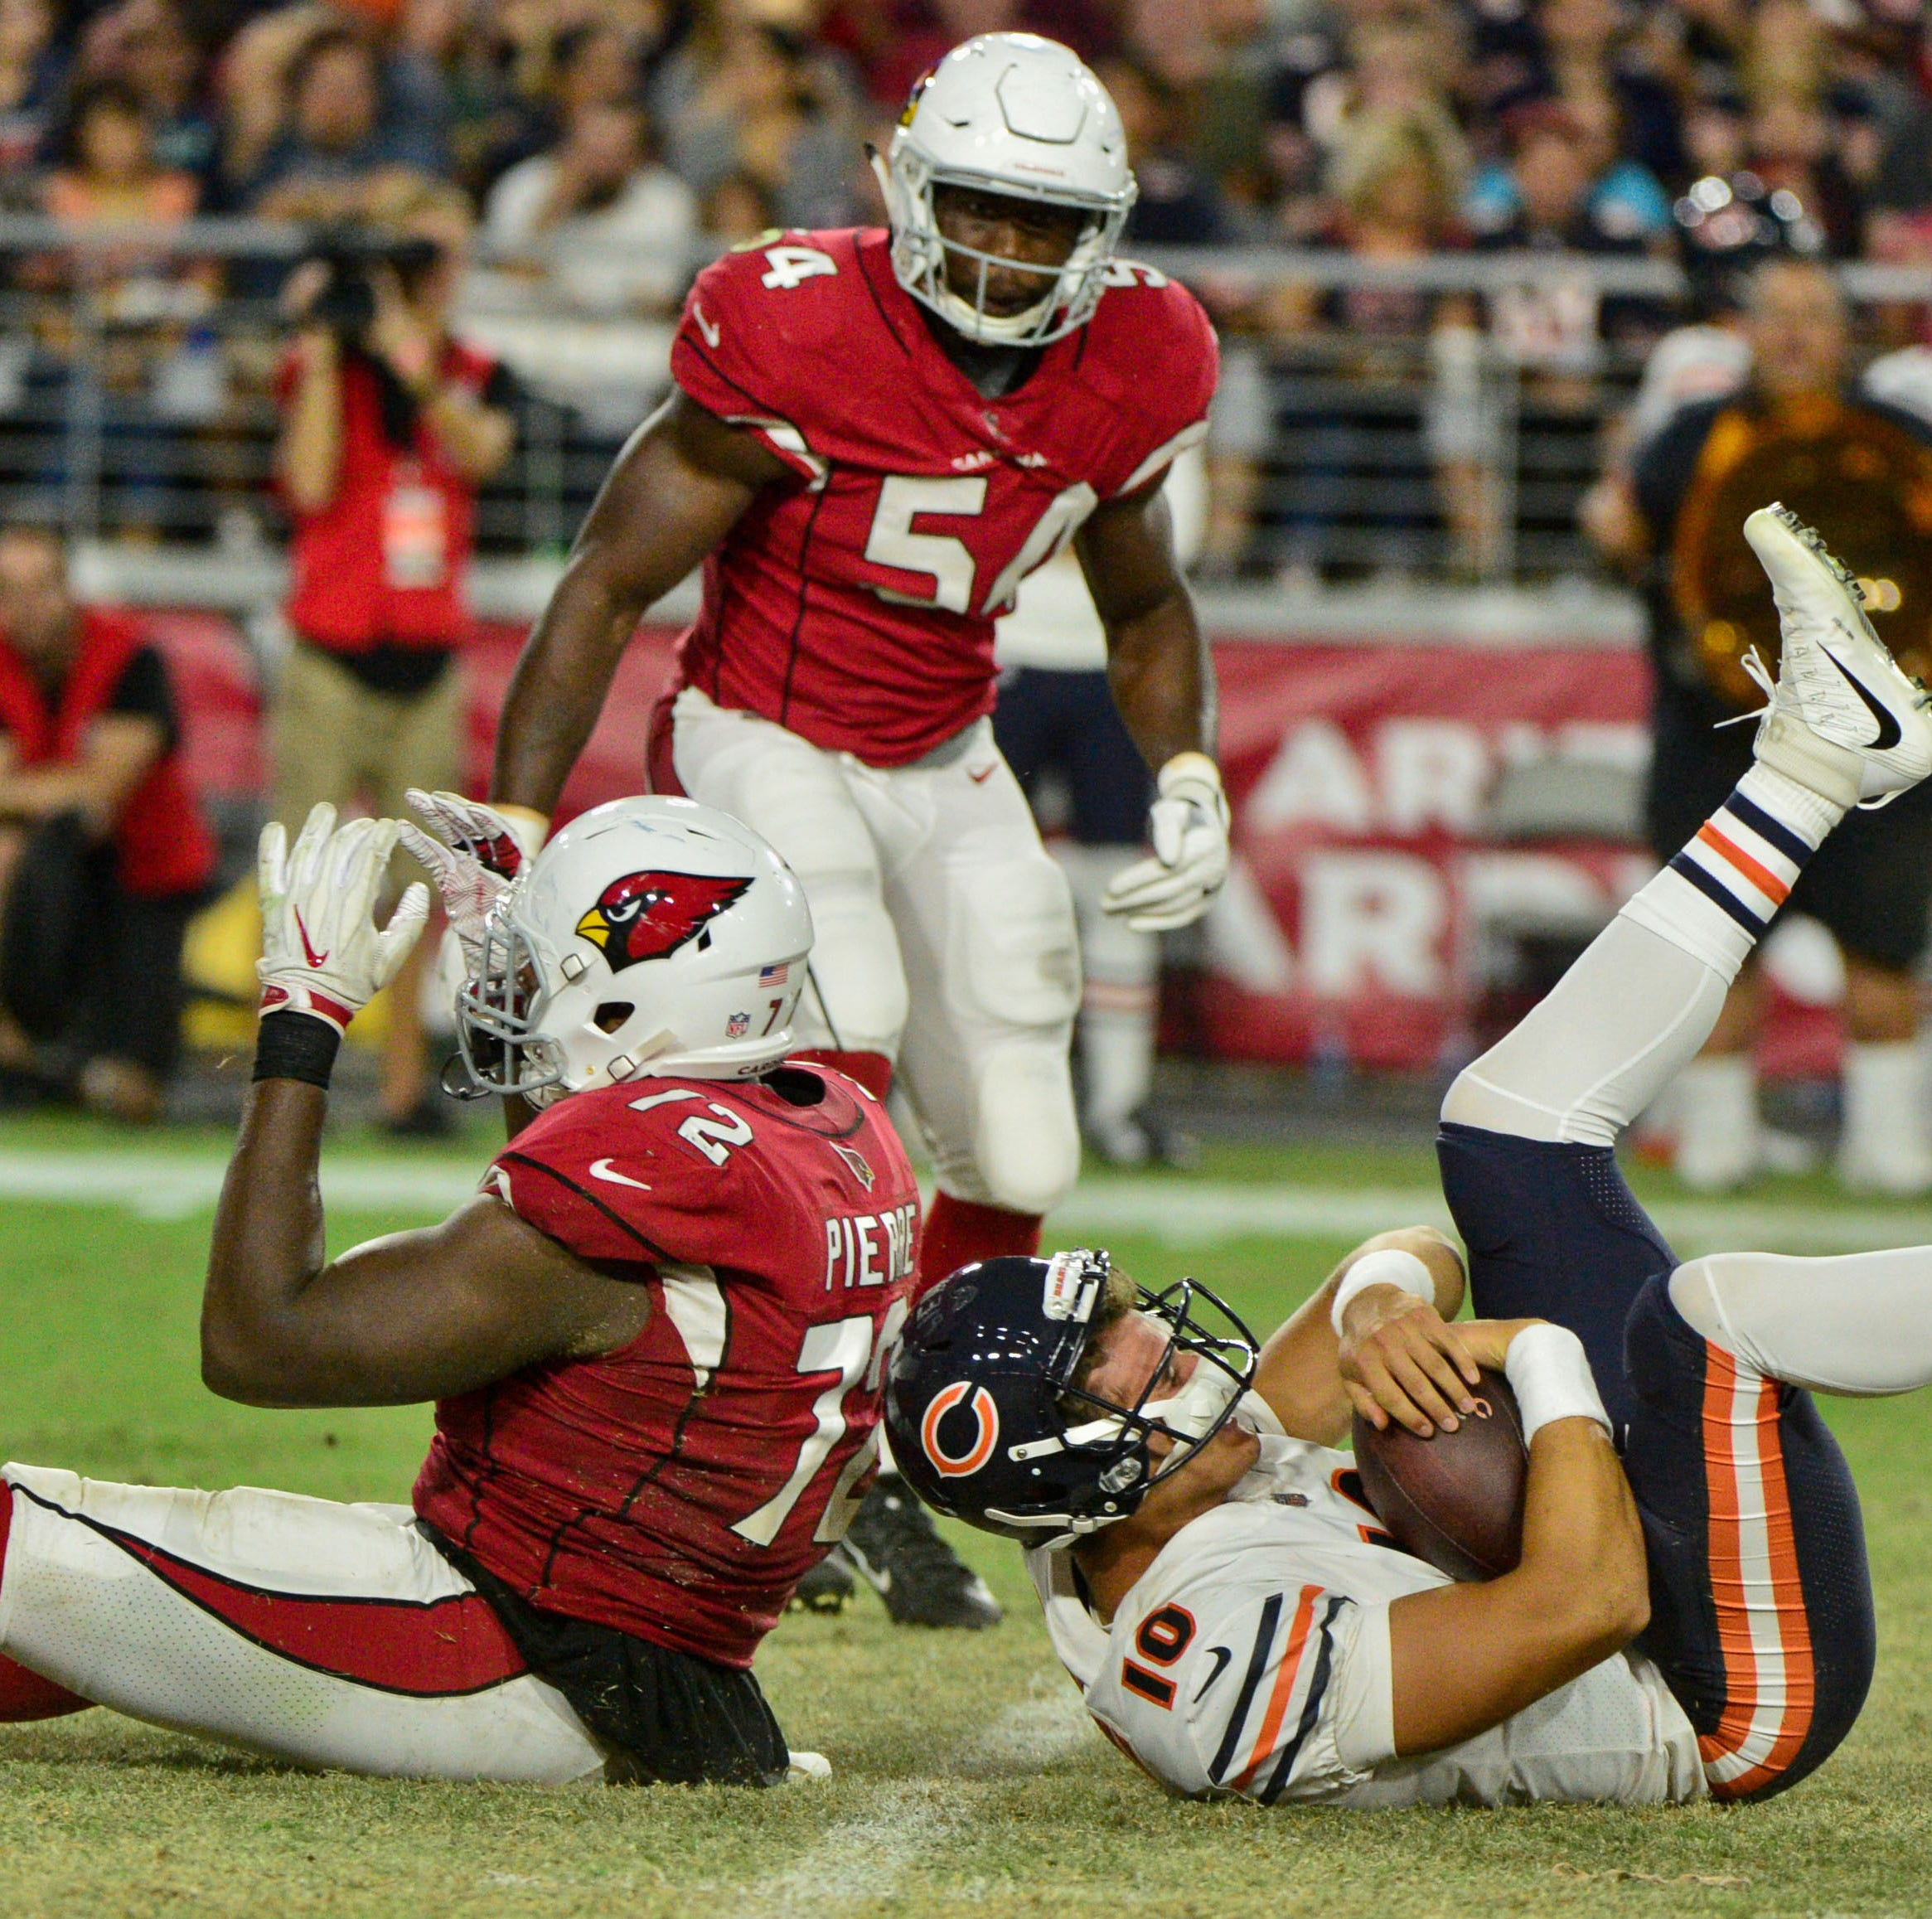 Chicago Bears vs. Arizona Cardinals picks, predictions: Who will win NFL Week 3 game?